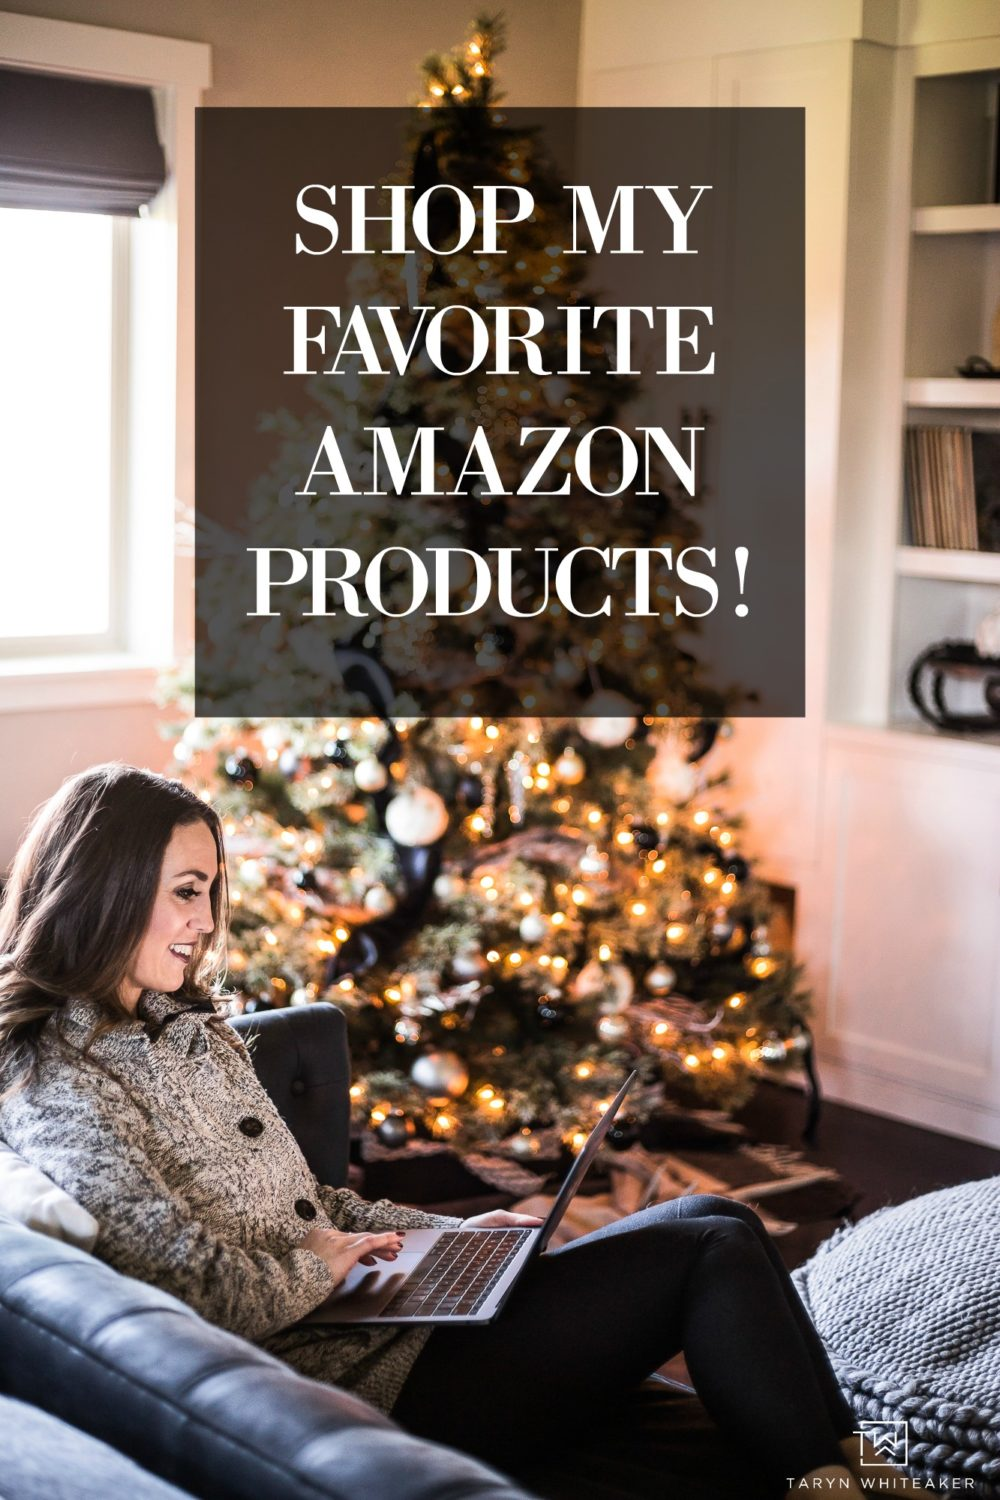 I've got all my favorite amazon products all in one place! From the best home decor accessories, kids clothing and toys and more. Great list to start holiday shopping!